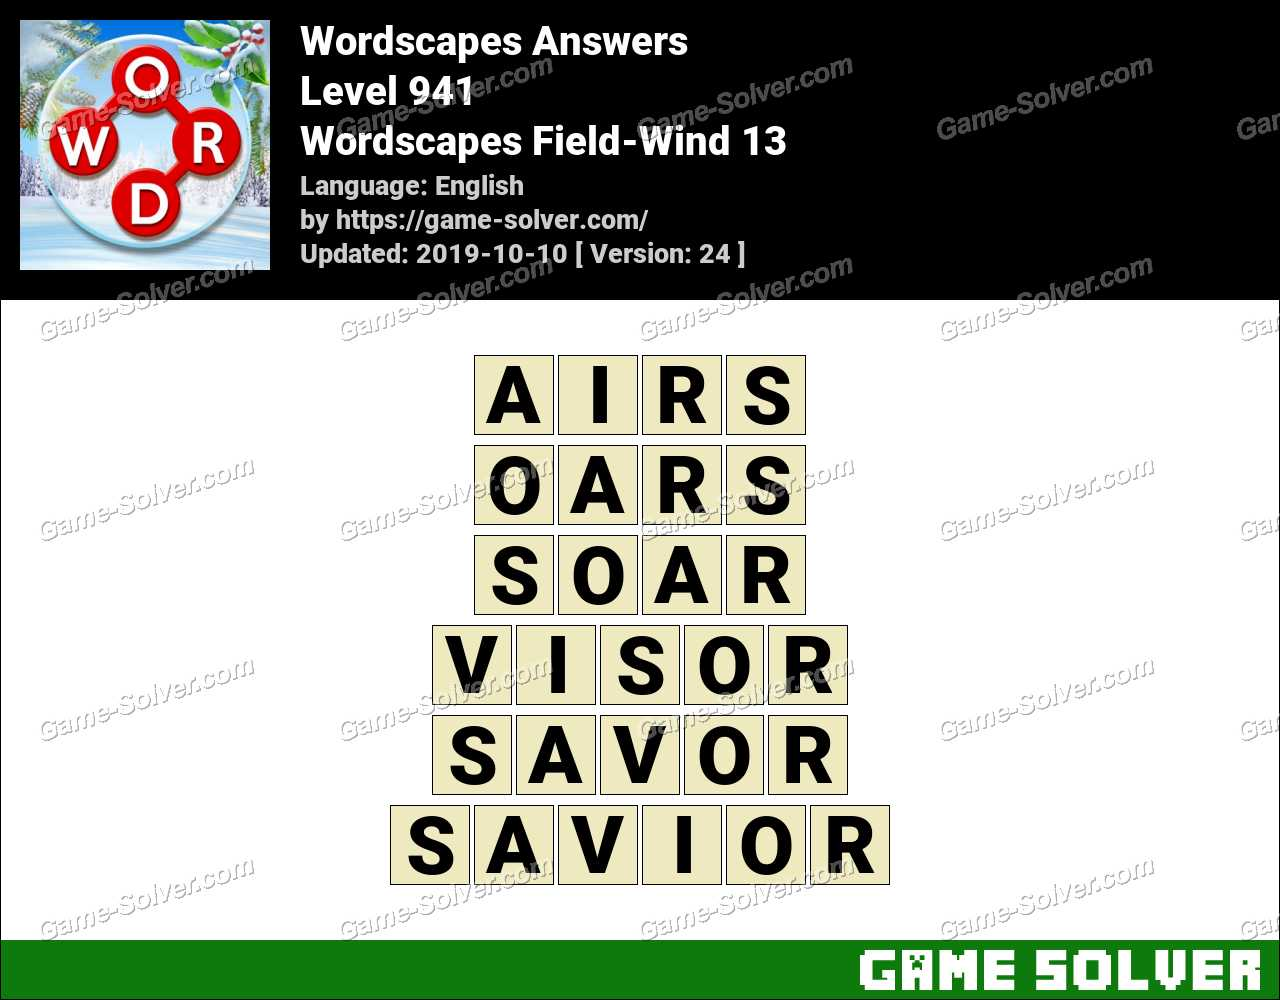 Wordscapes Field-Wind 13 Answers